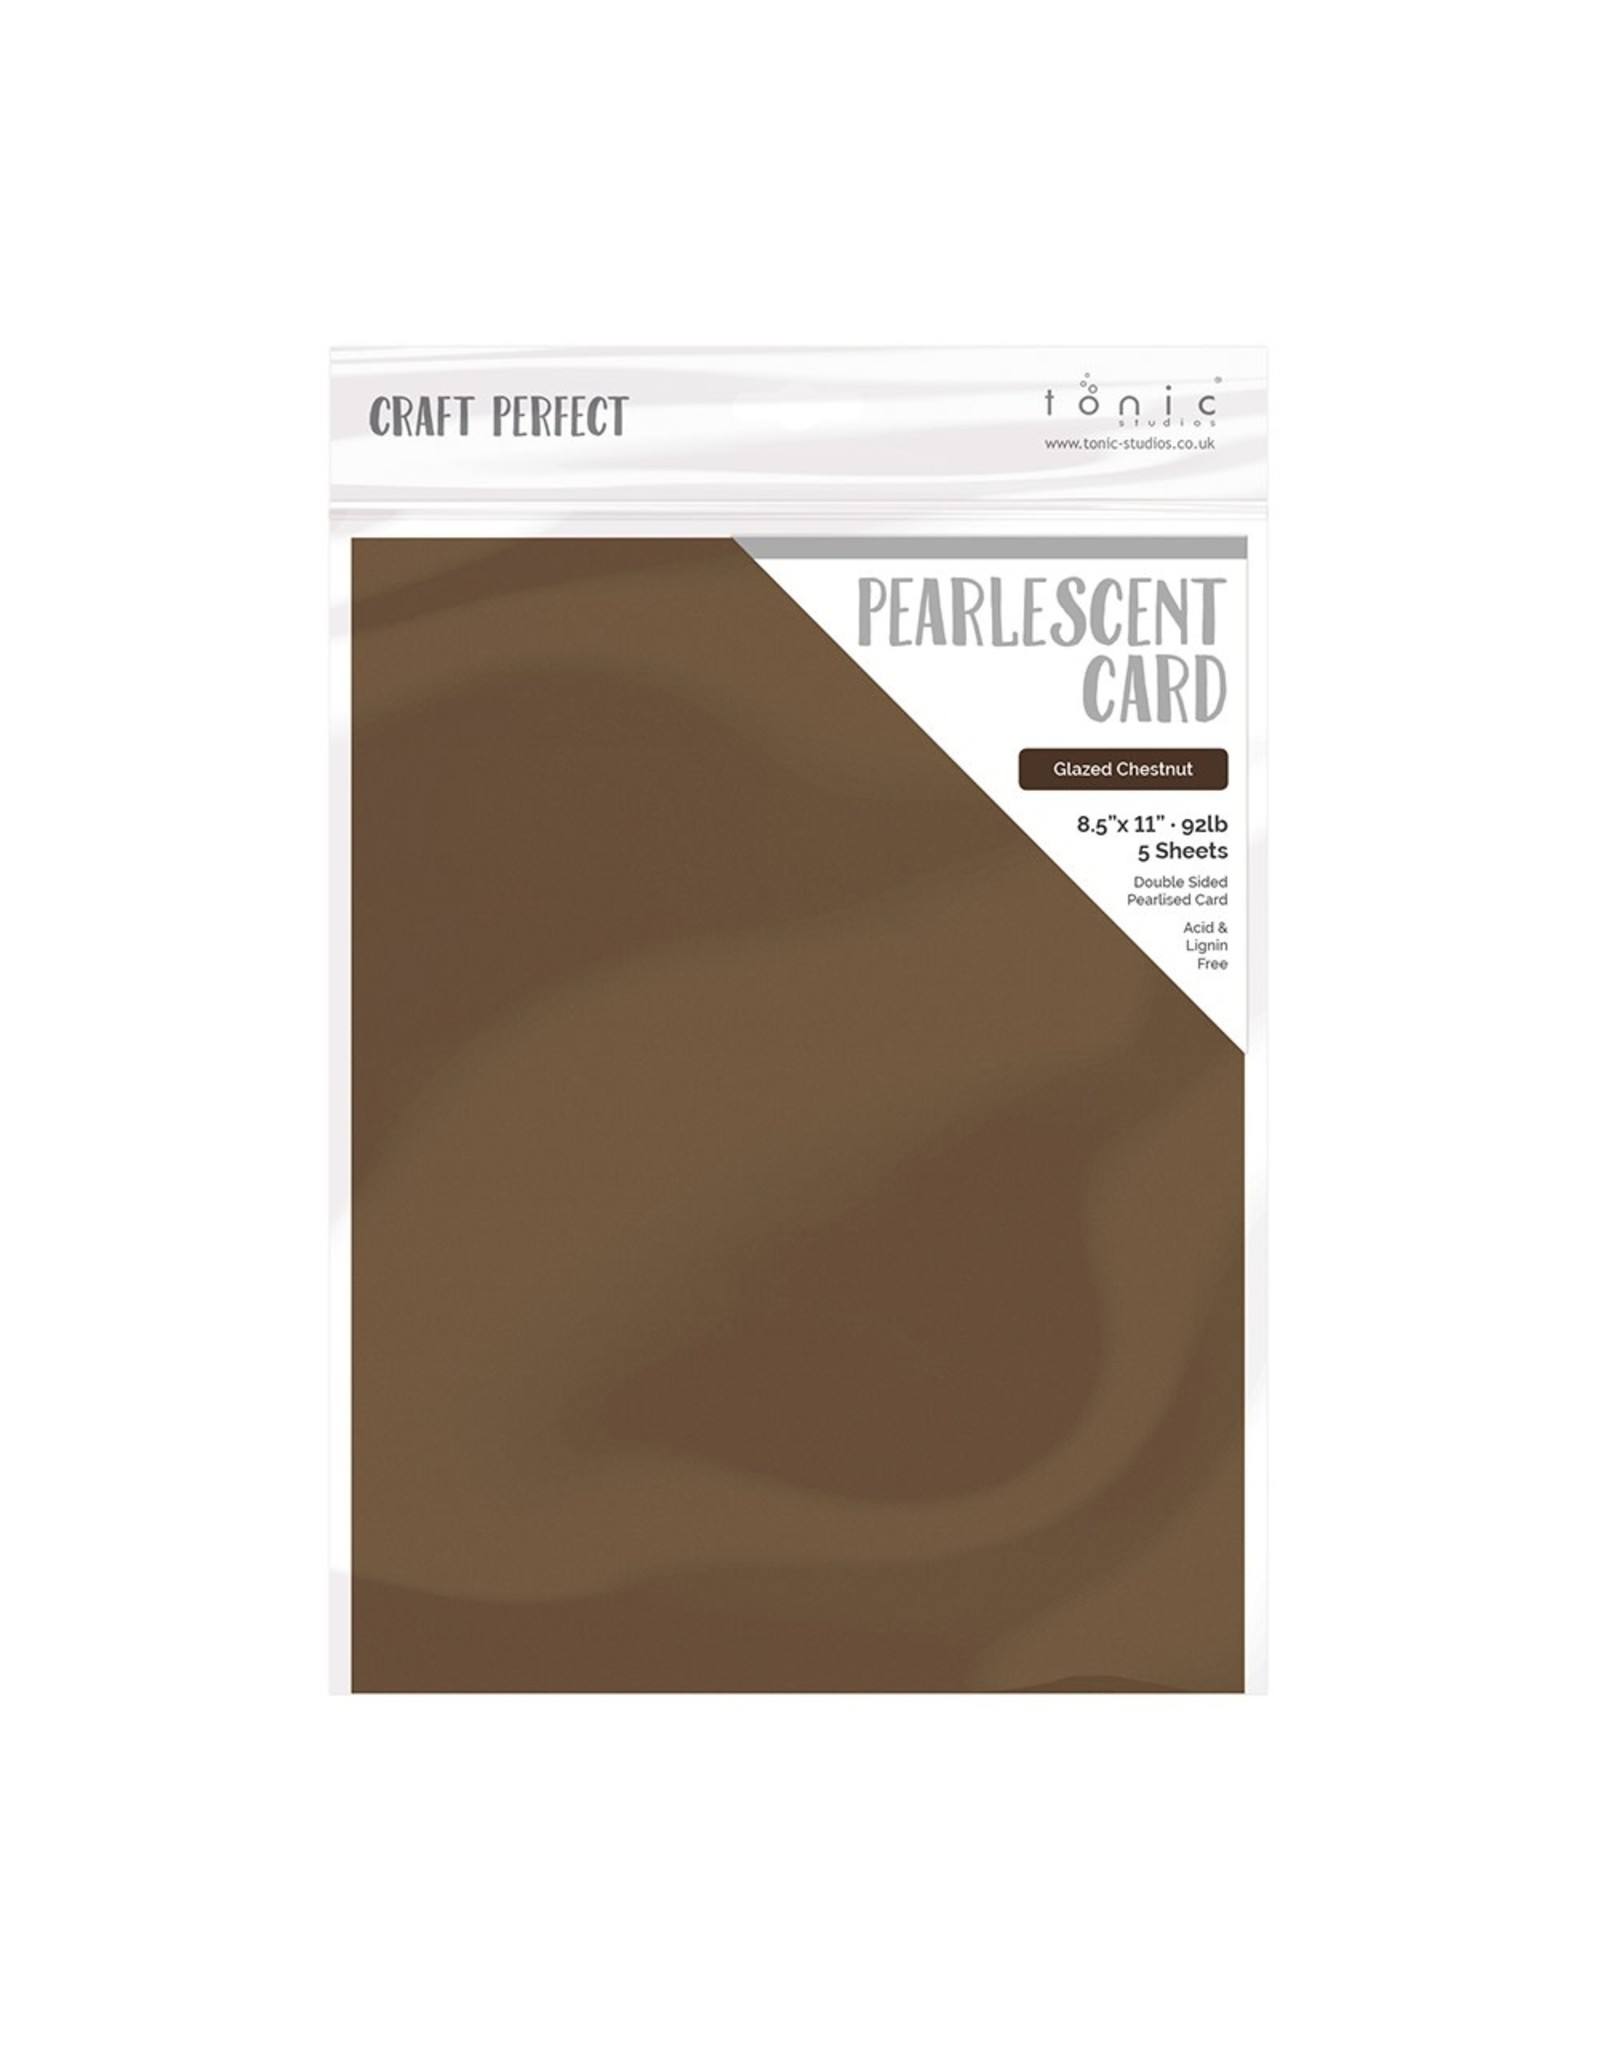 Craft Perfect Glazed Chestnut - Pearlescent